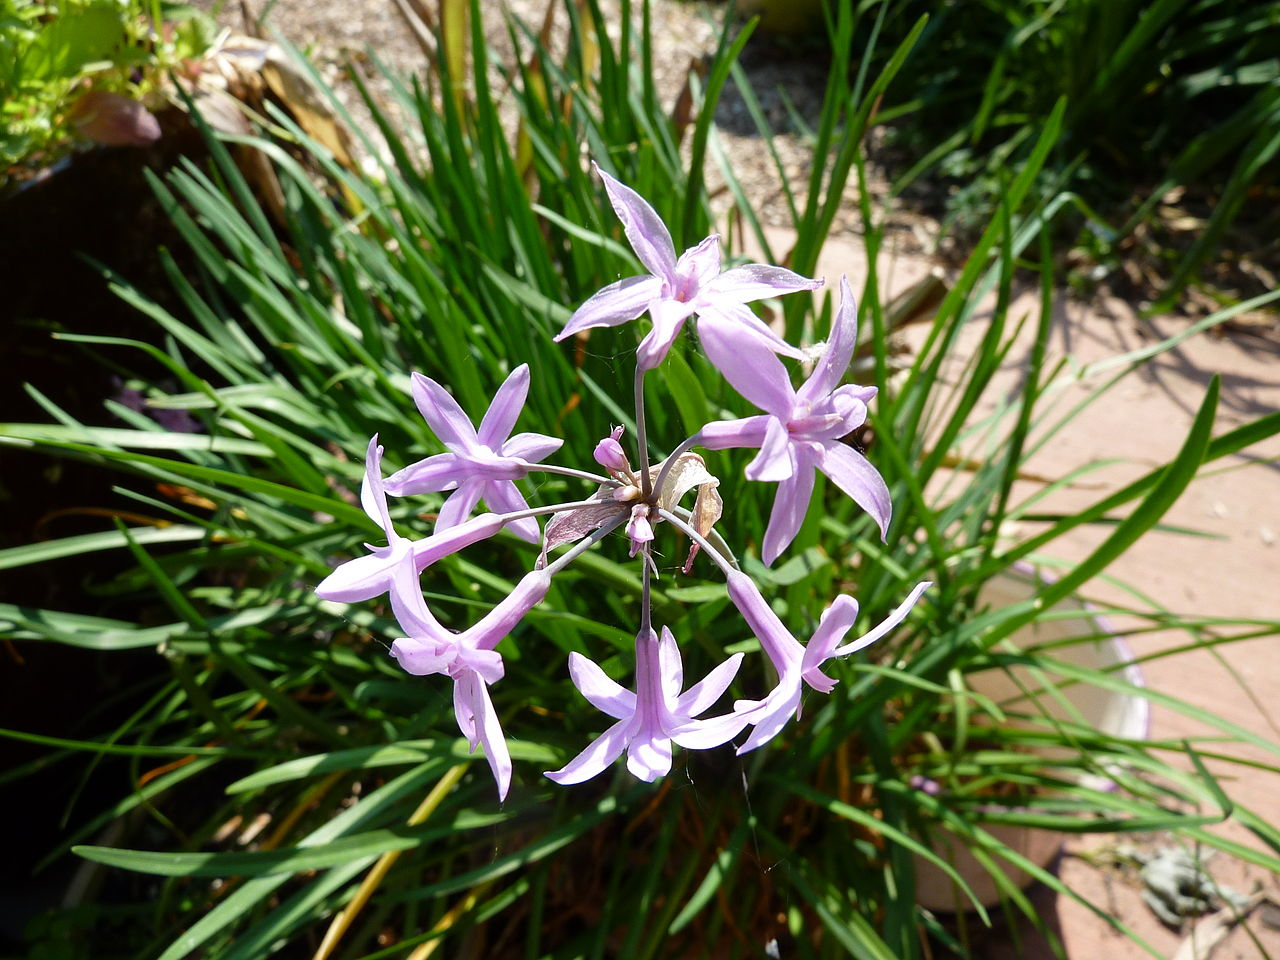 Tulbaghia_violacea_1